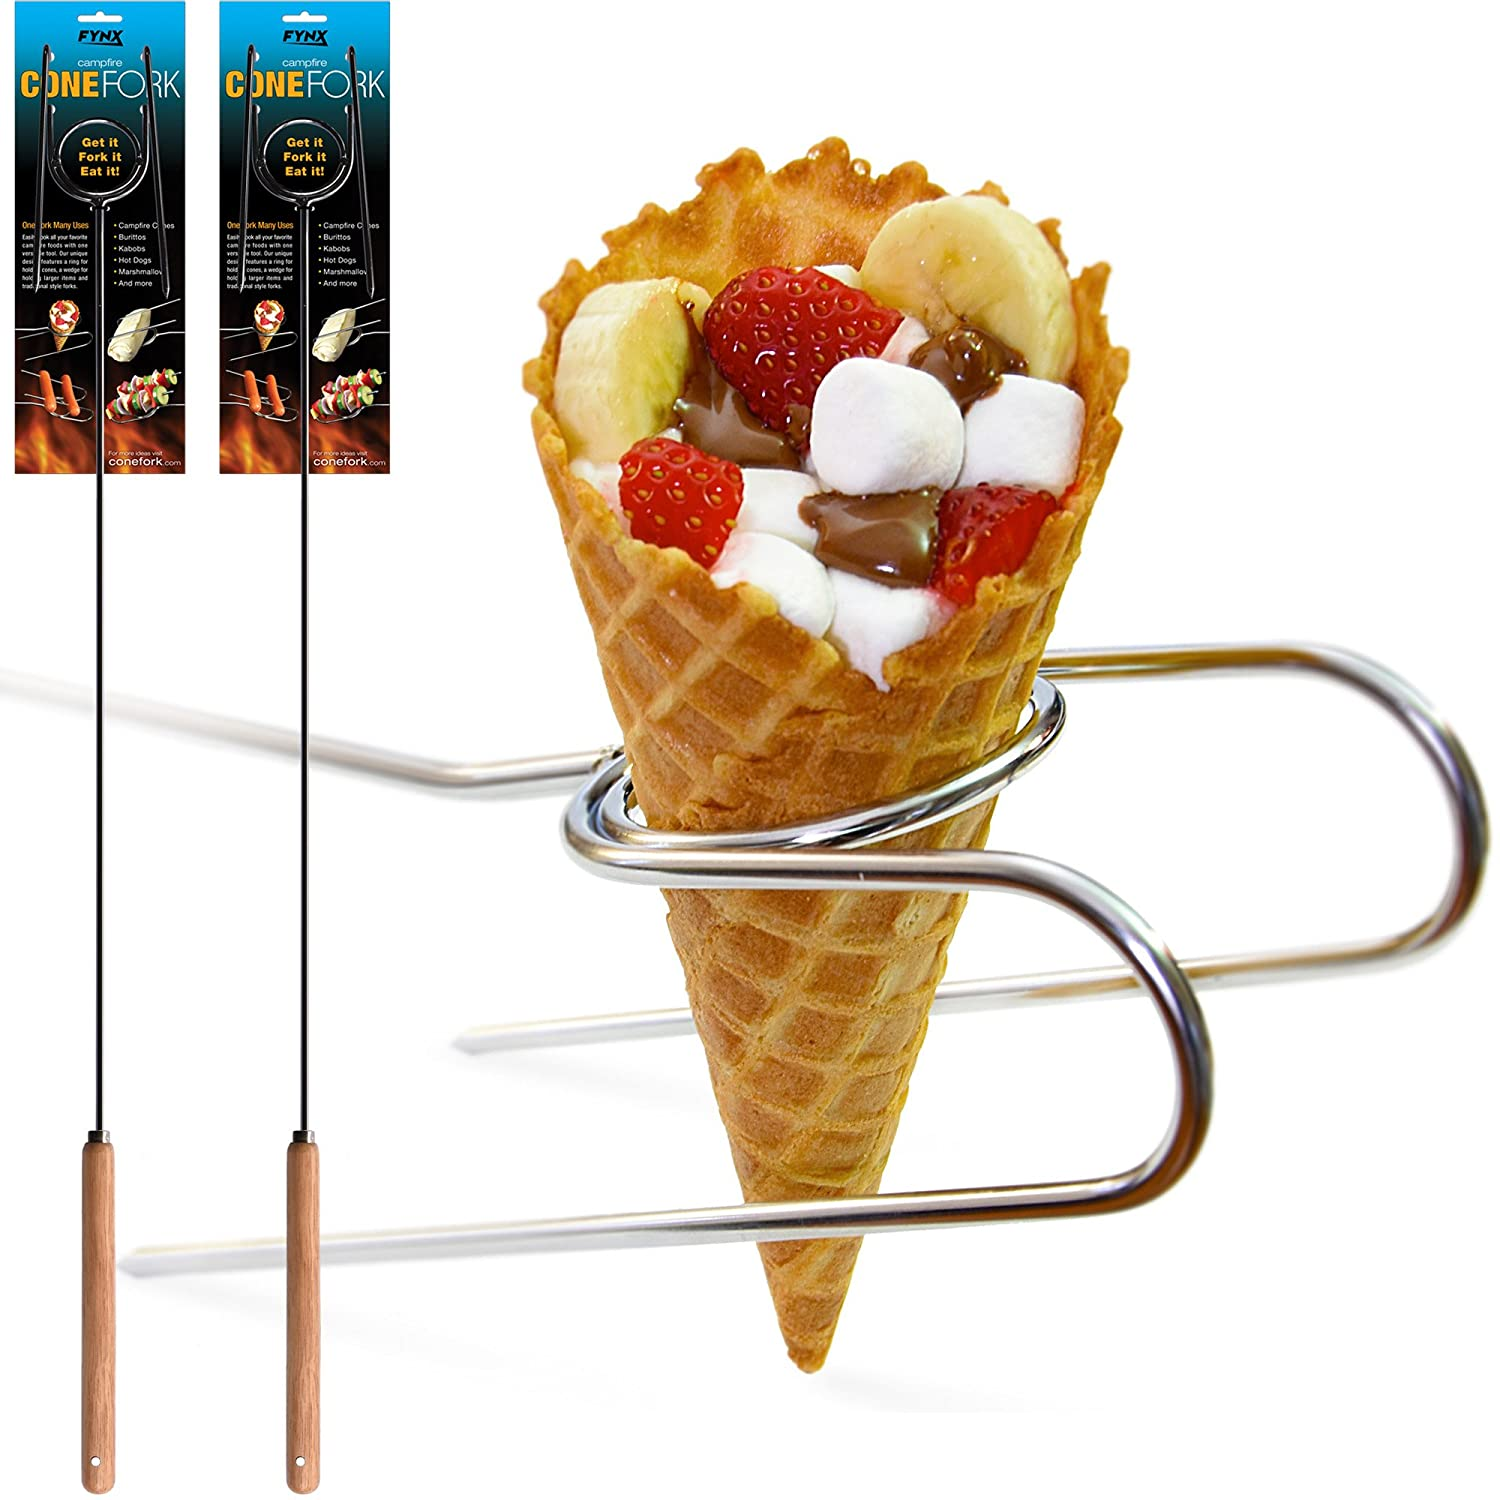 2 Campfire Cone Forks, Ultimate Roasting Stick, Hands Free, Burritos, Kabobs, Corn on the Cob, Hot Dogs, Marshmallows, S'mores and more S'mores and more FYNX